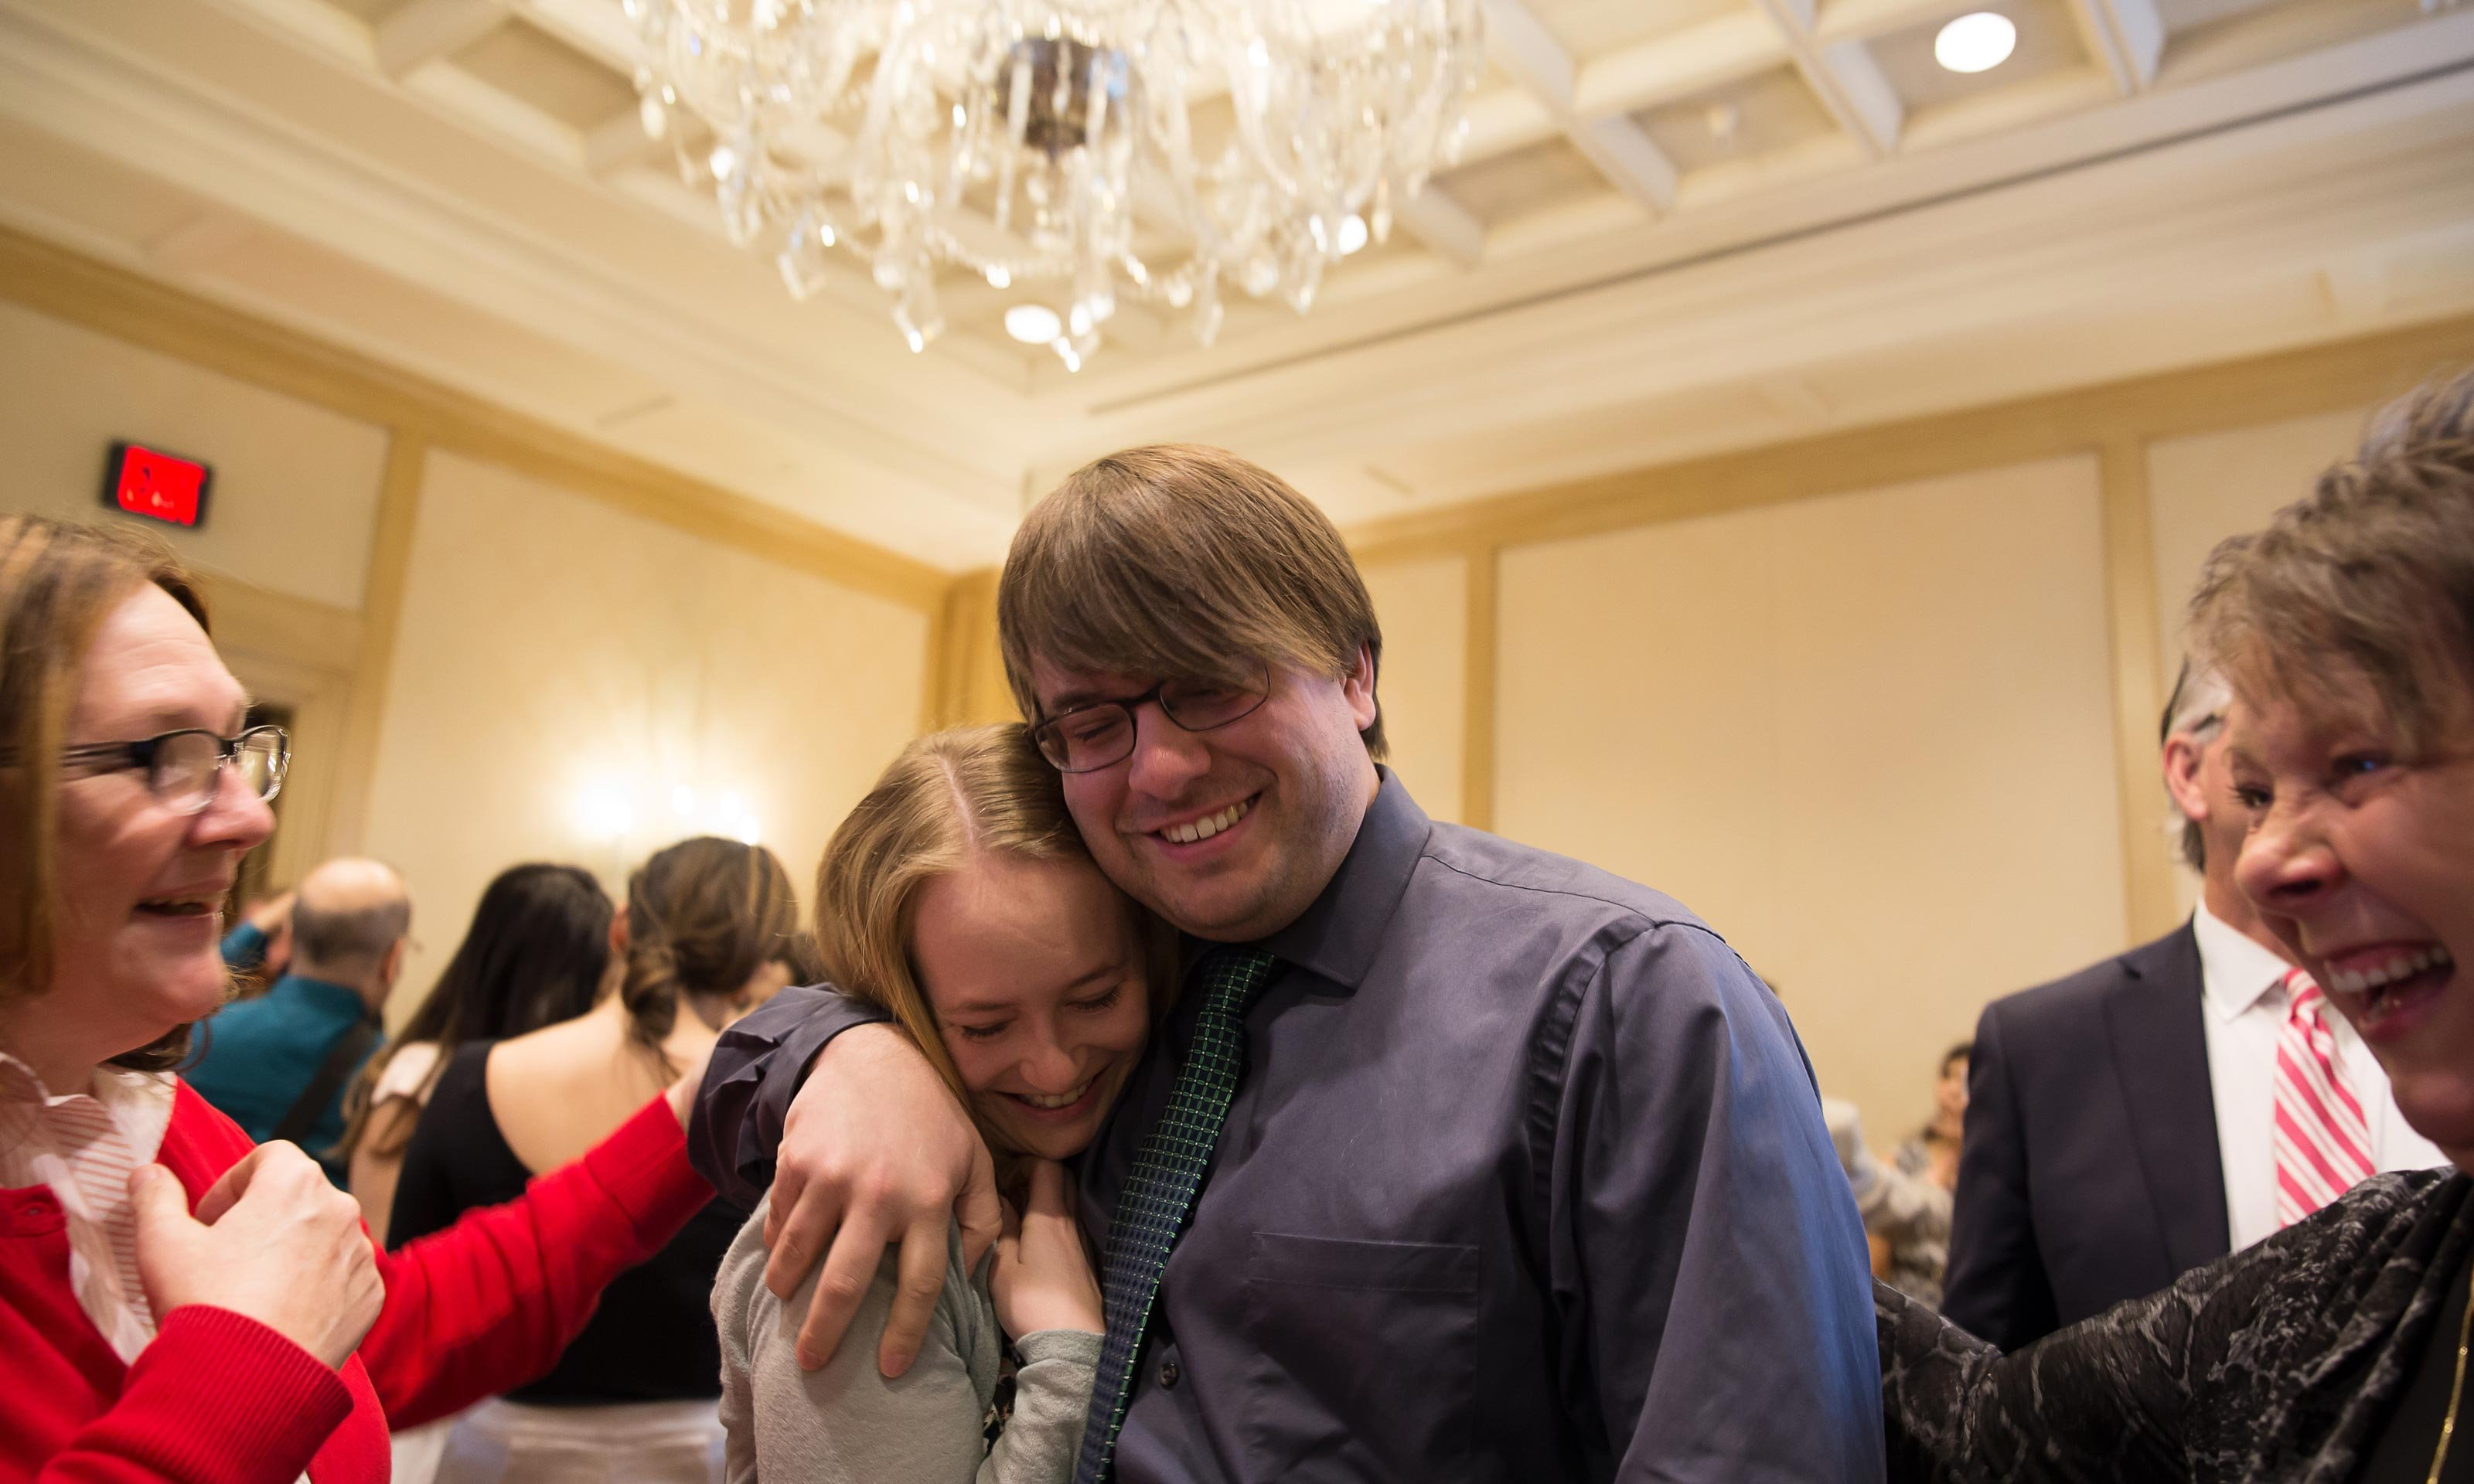 O U W B student celebrating his residency match at the Match Day 2017 ceremony, held at The Townsend Hotel in Birmingham, Michigan. Hugging a female friend in a banquet room.